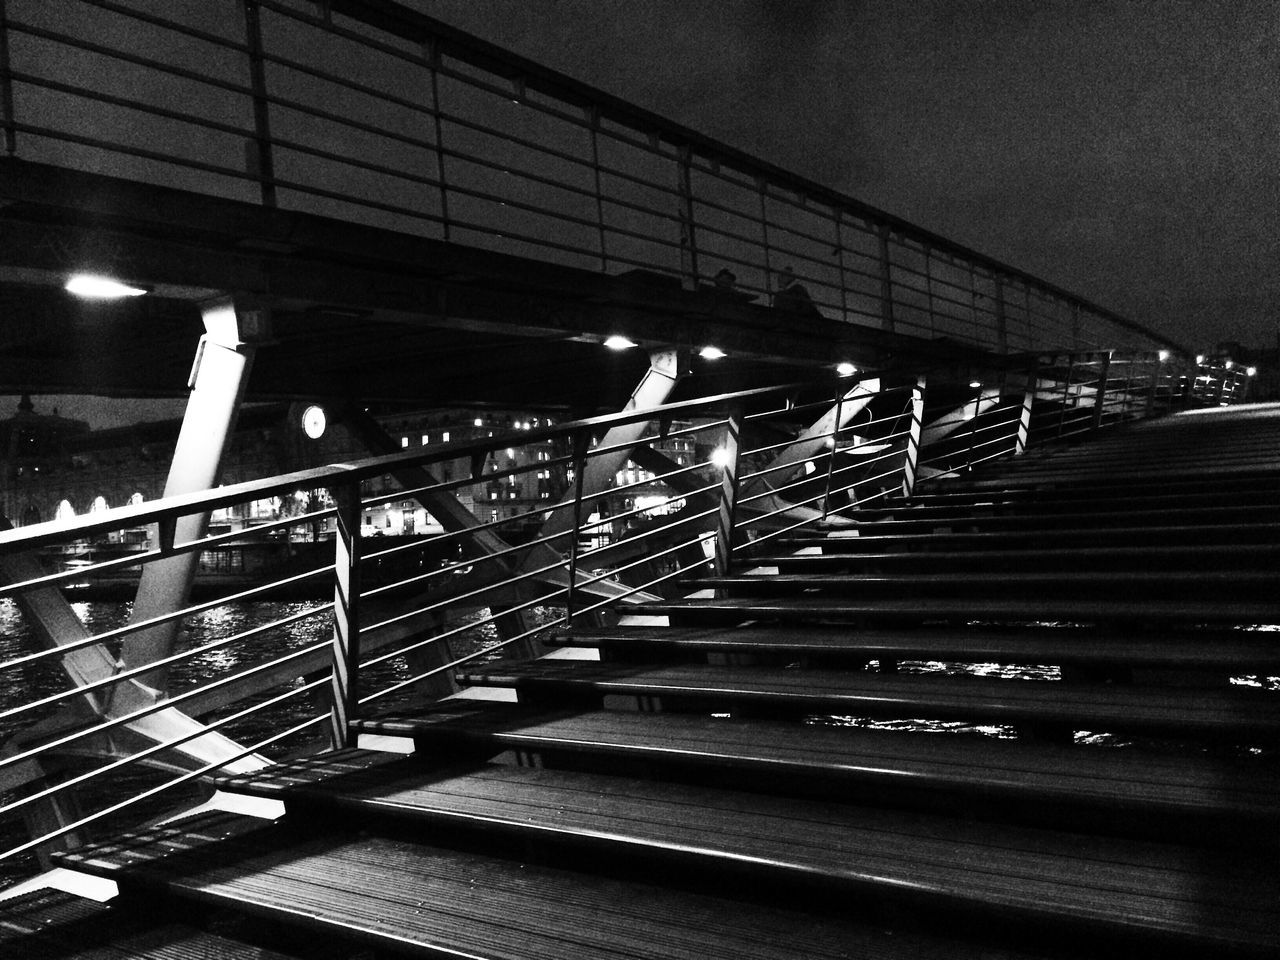 railing, steps and staircases, steps, staircase, built structure, no people, night, architecture, transportation, illuminated, outdoors, hand rail, sky